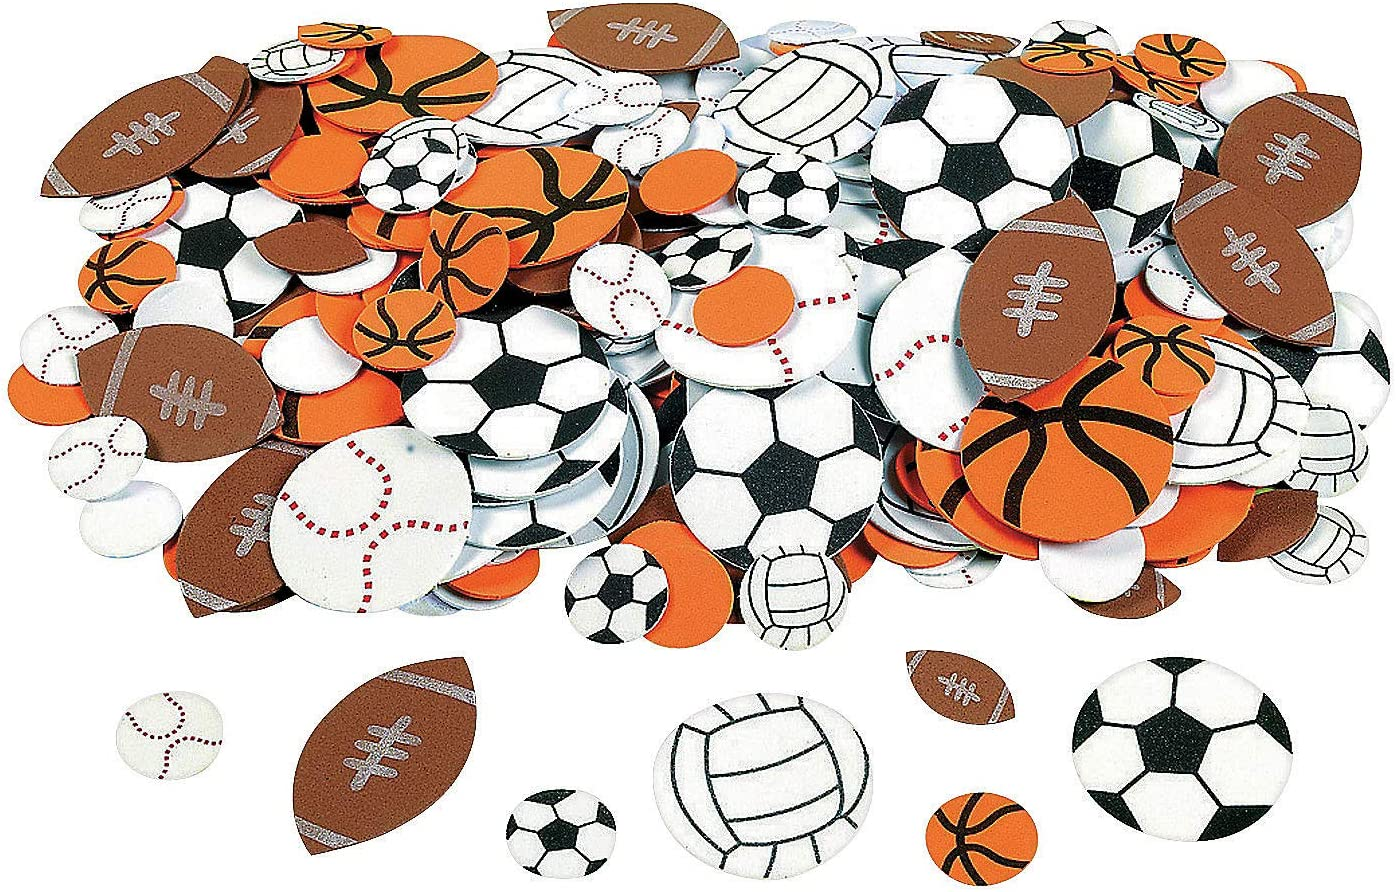 Foam Sports Stickers for Kids - Adhesive Foam Sticker Pack - 500 Piece Sports Ball Foam Shapes - Crafts for Kids and Fun Home Activities